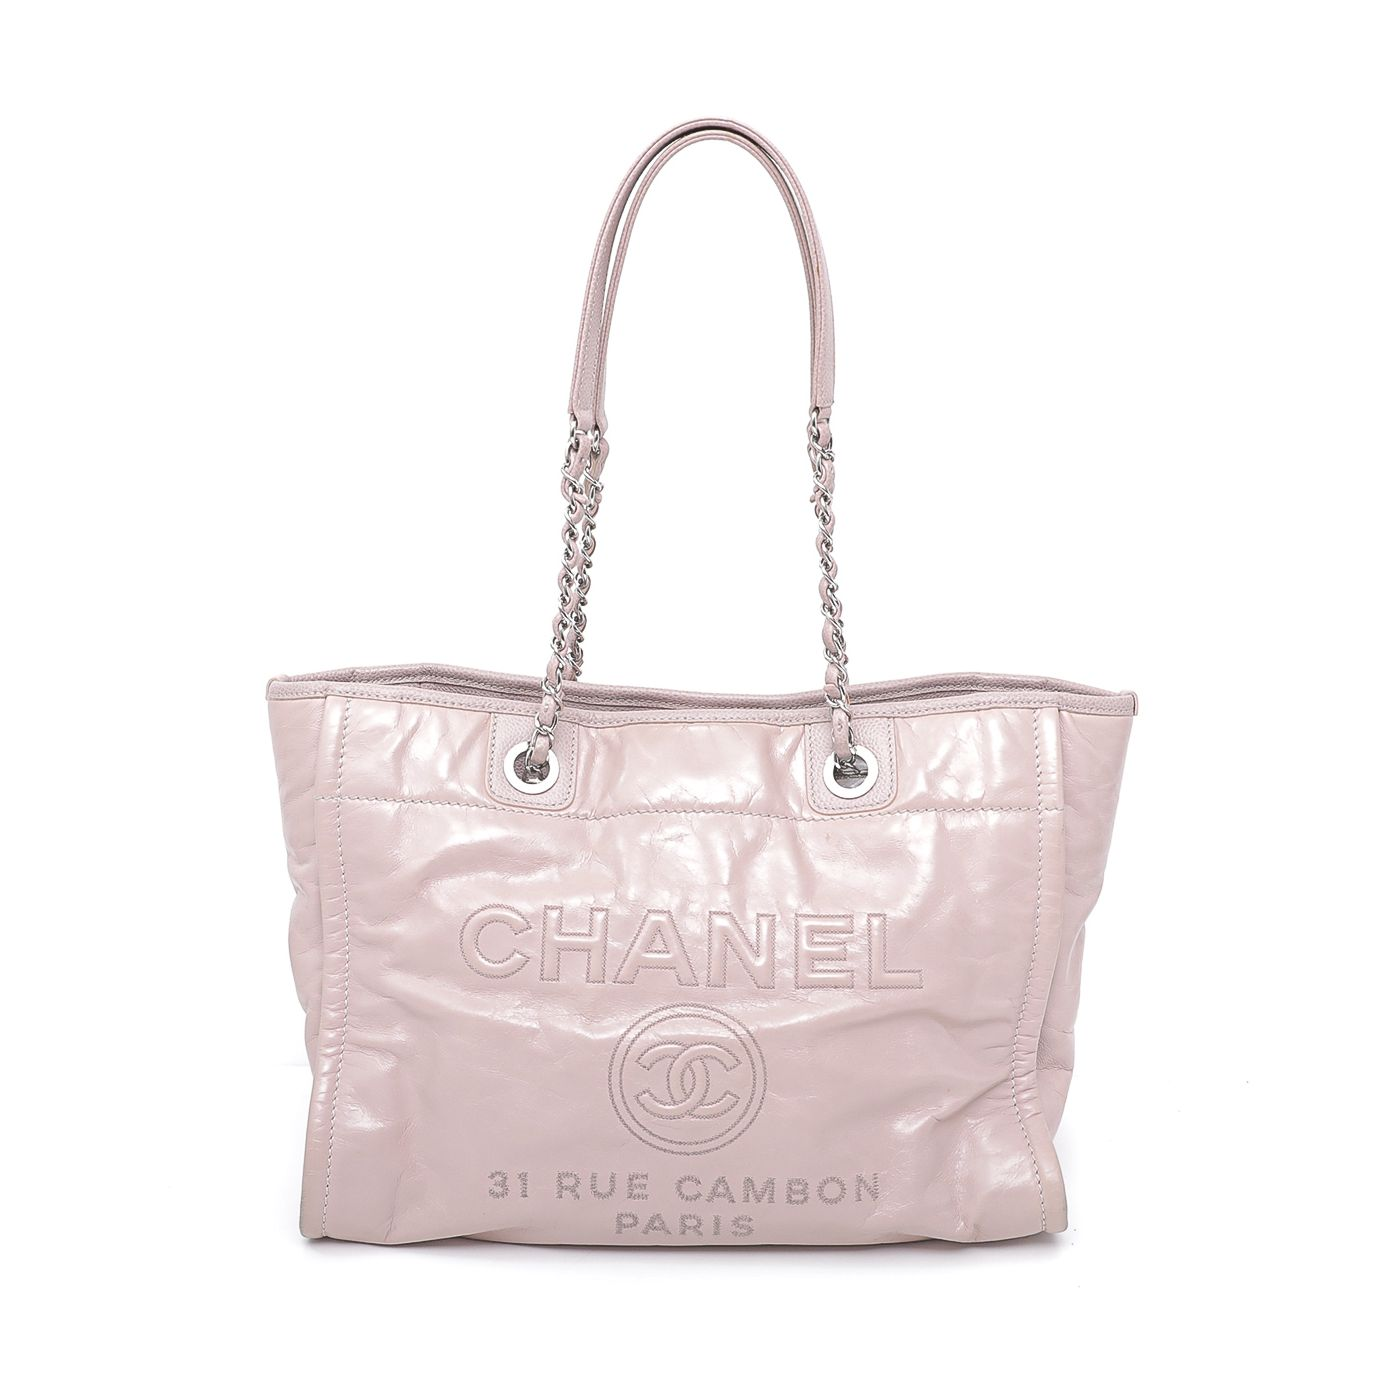 Chanel Blush Pink Deauville Tote Small Bag